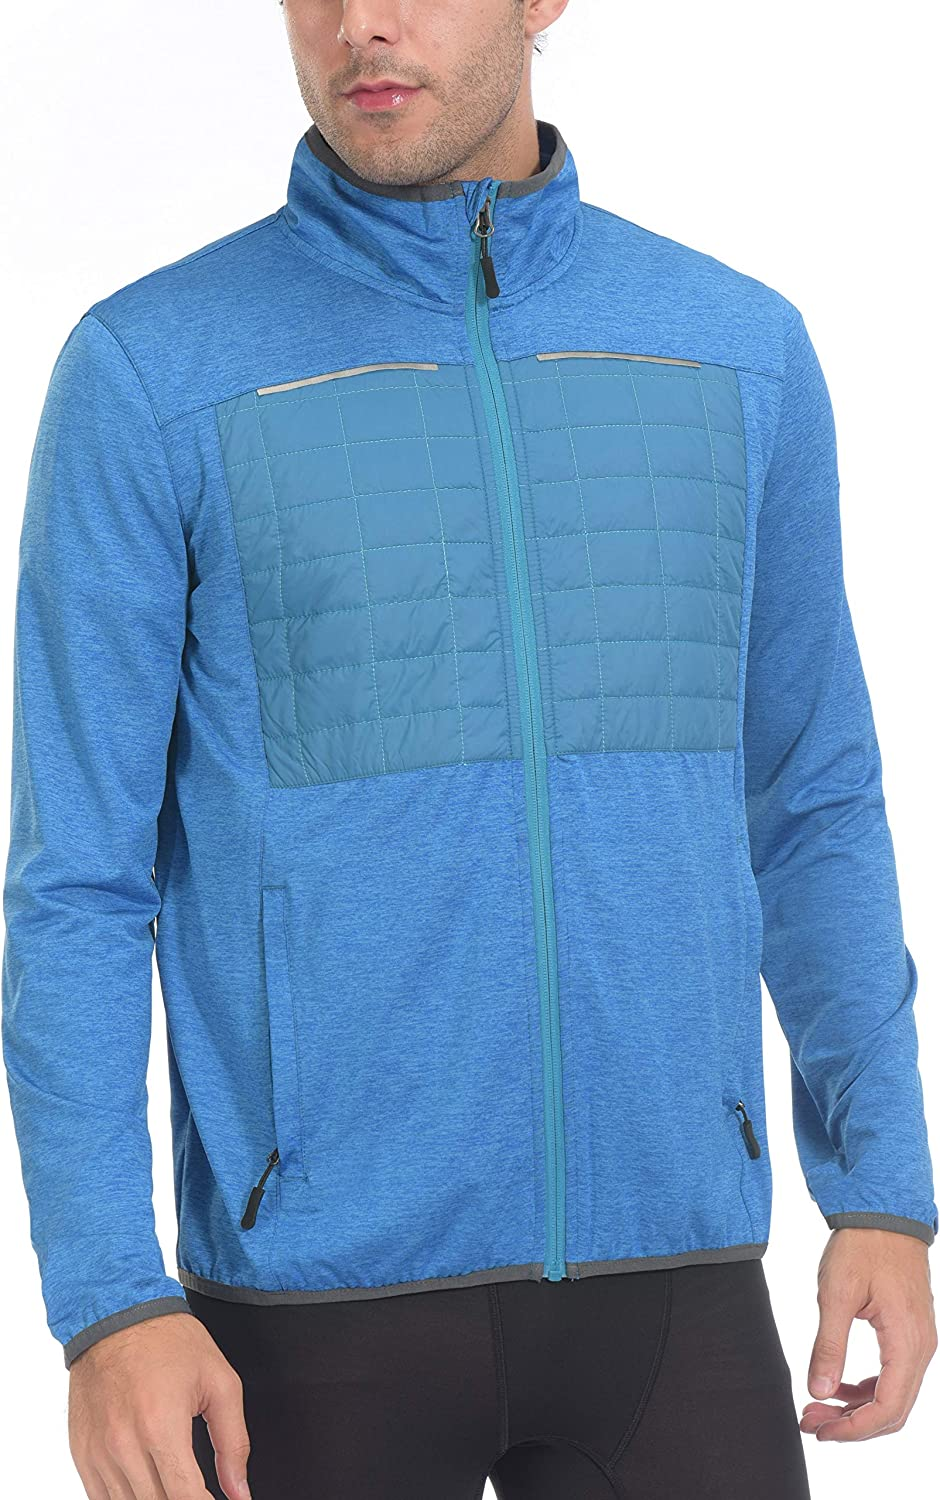 Little Donkey Andy Mens Insulated Full-Zip Running Shirts Thermal Hybrid Jacket Long Sleeve Quick Dry Sportswear